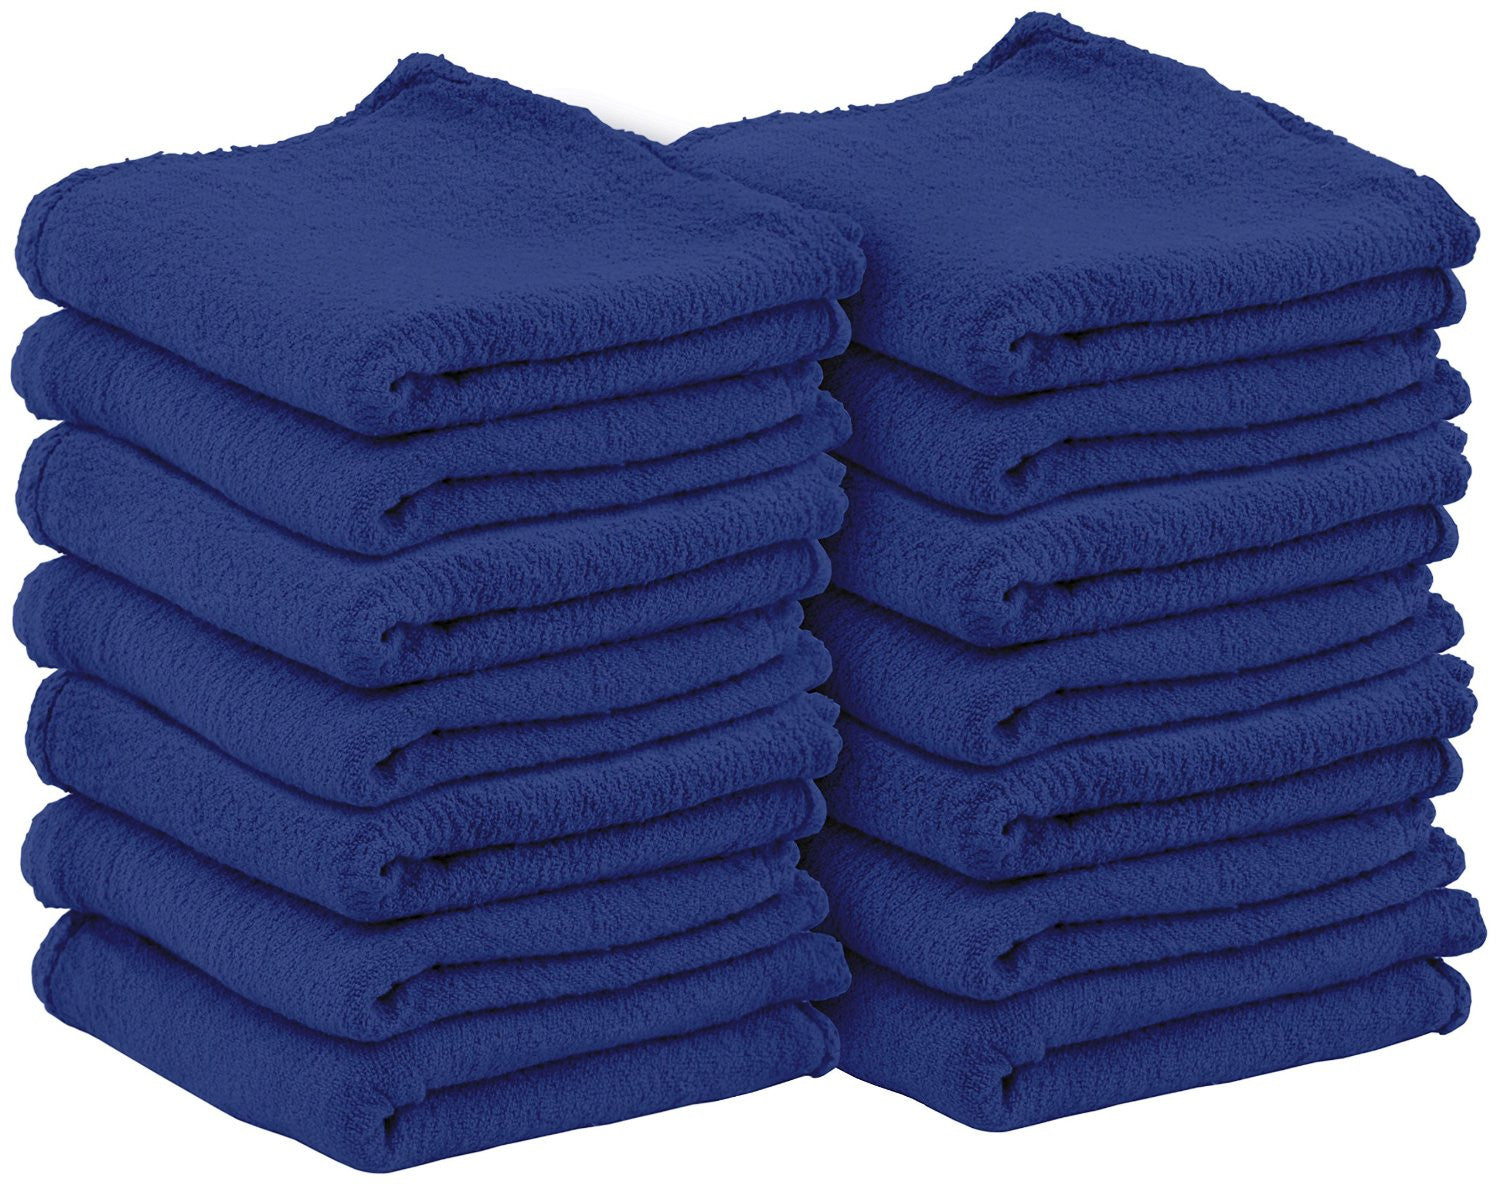 Shop Towels (Pack of 100, 14 X 14 Inch)